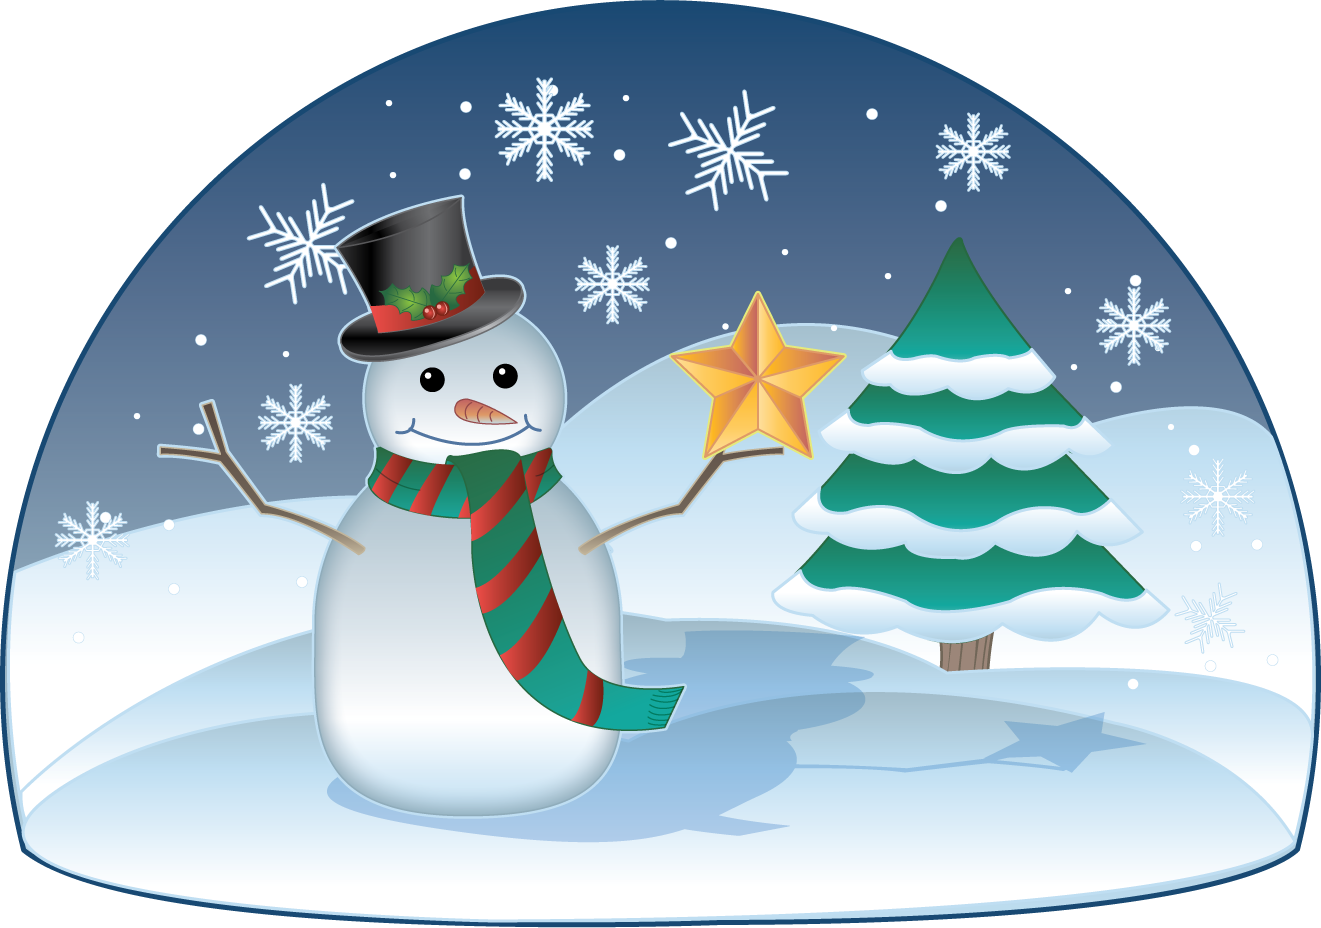 Saying clipart winter wonderland Clip clip season images kid